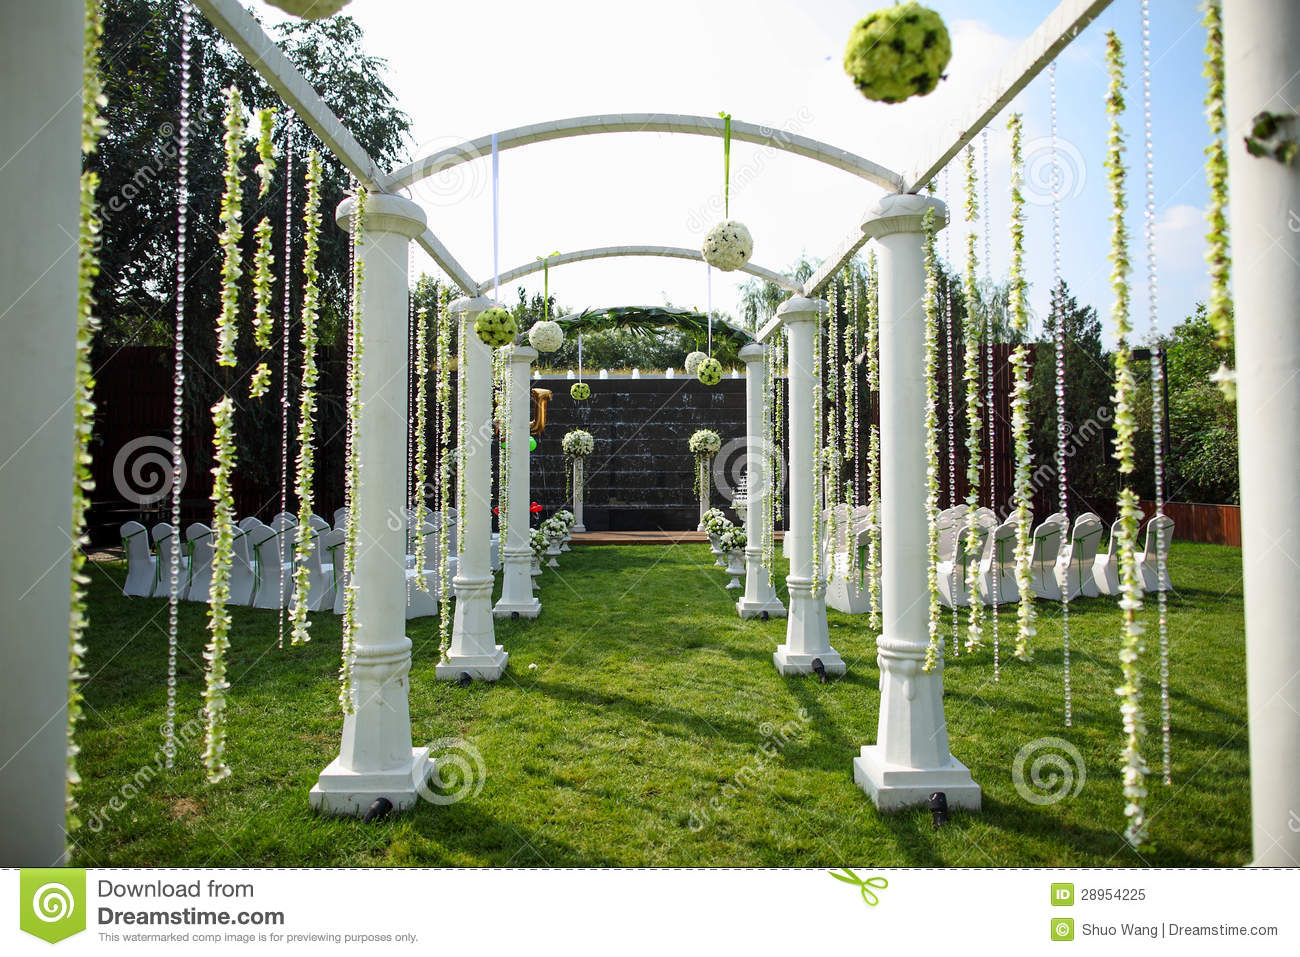 Outdoor Wedding Scene Royalty Free Stock Photo - Image: 28954225